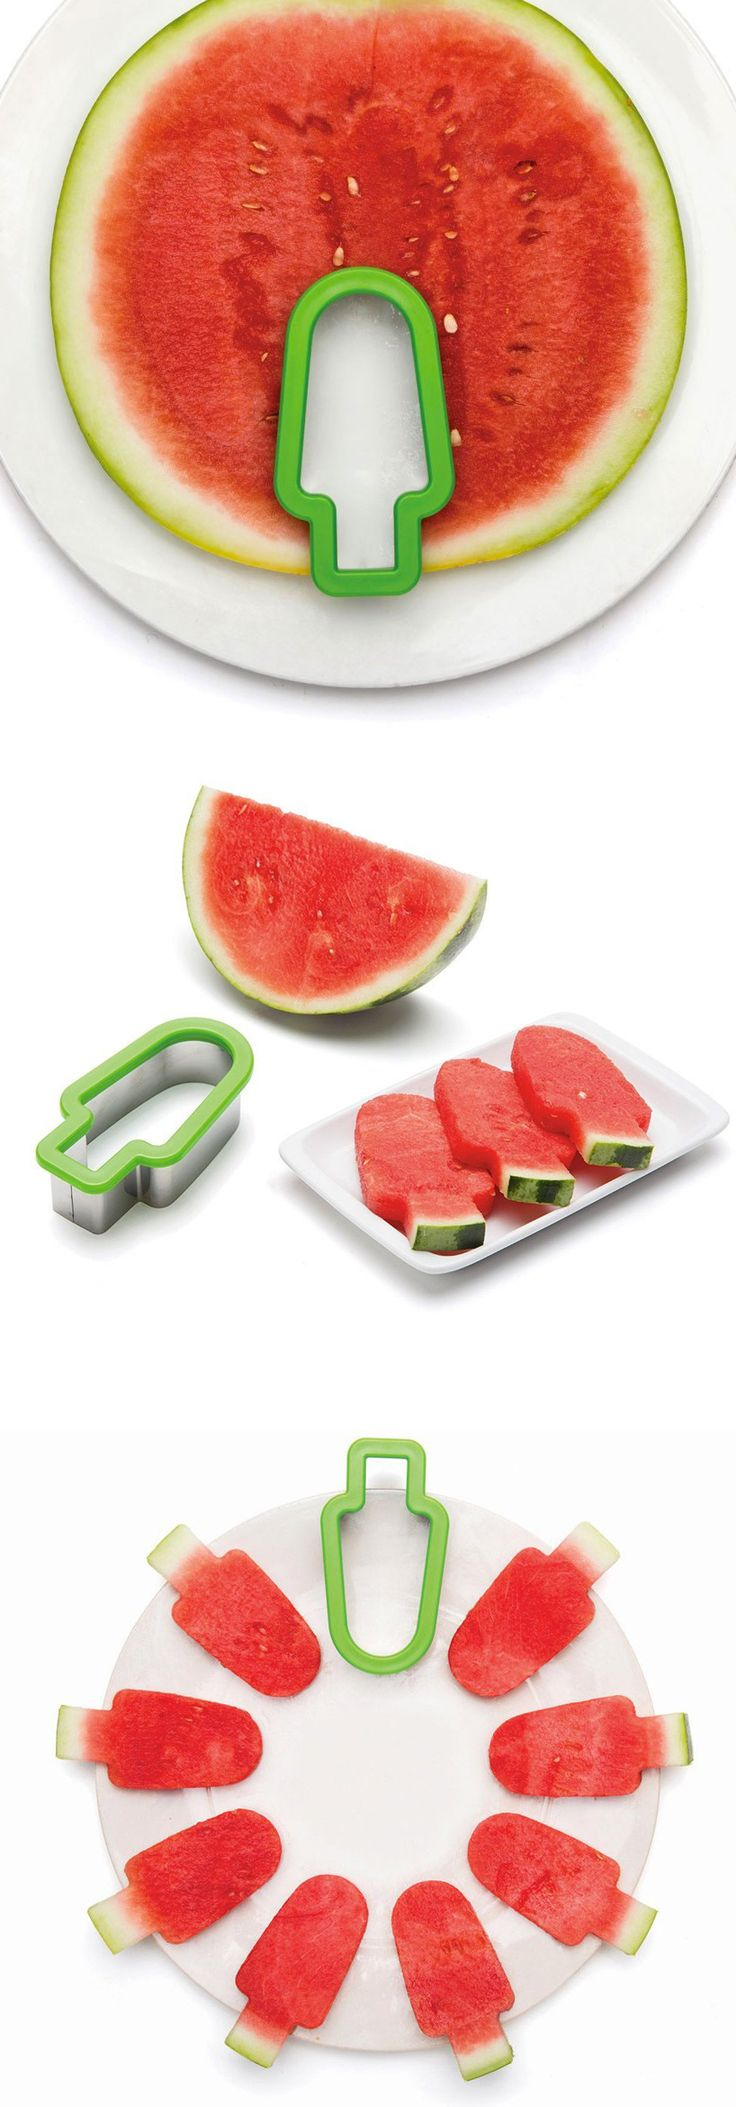 Watermelon popsicle slicer...fun way to serve up watermelon slices